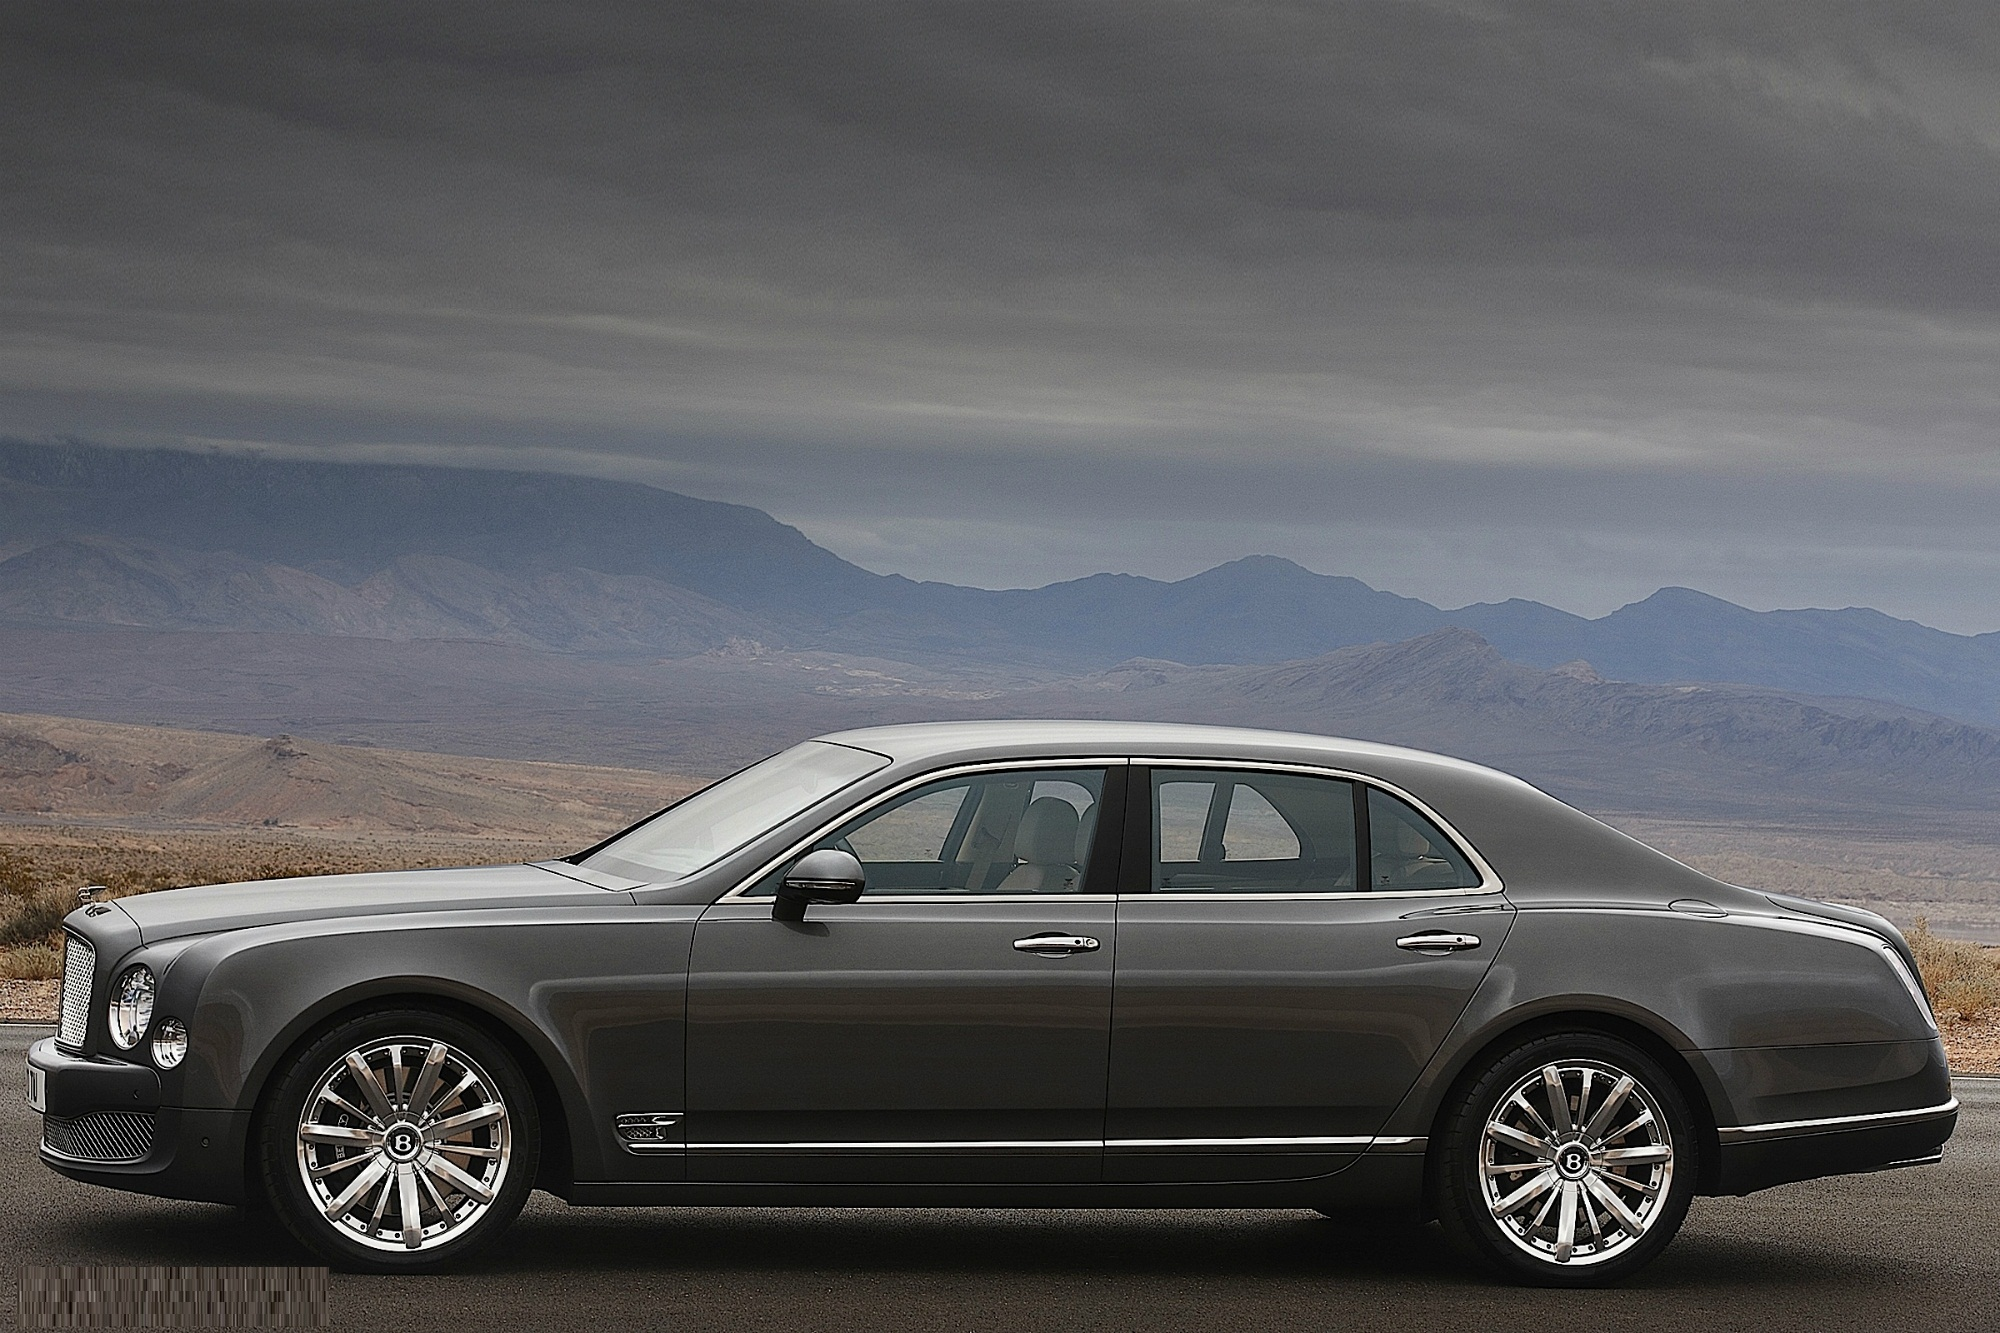 2018 Bentley Mulsanne Mulliner Car Photos Catalog 2018